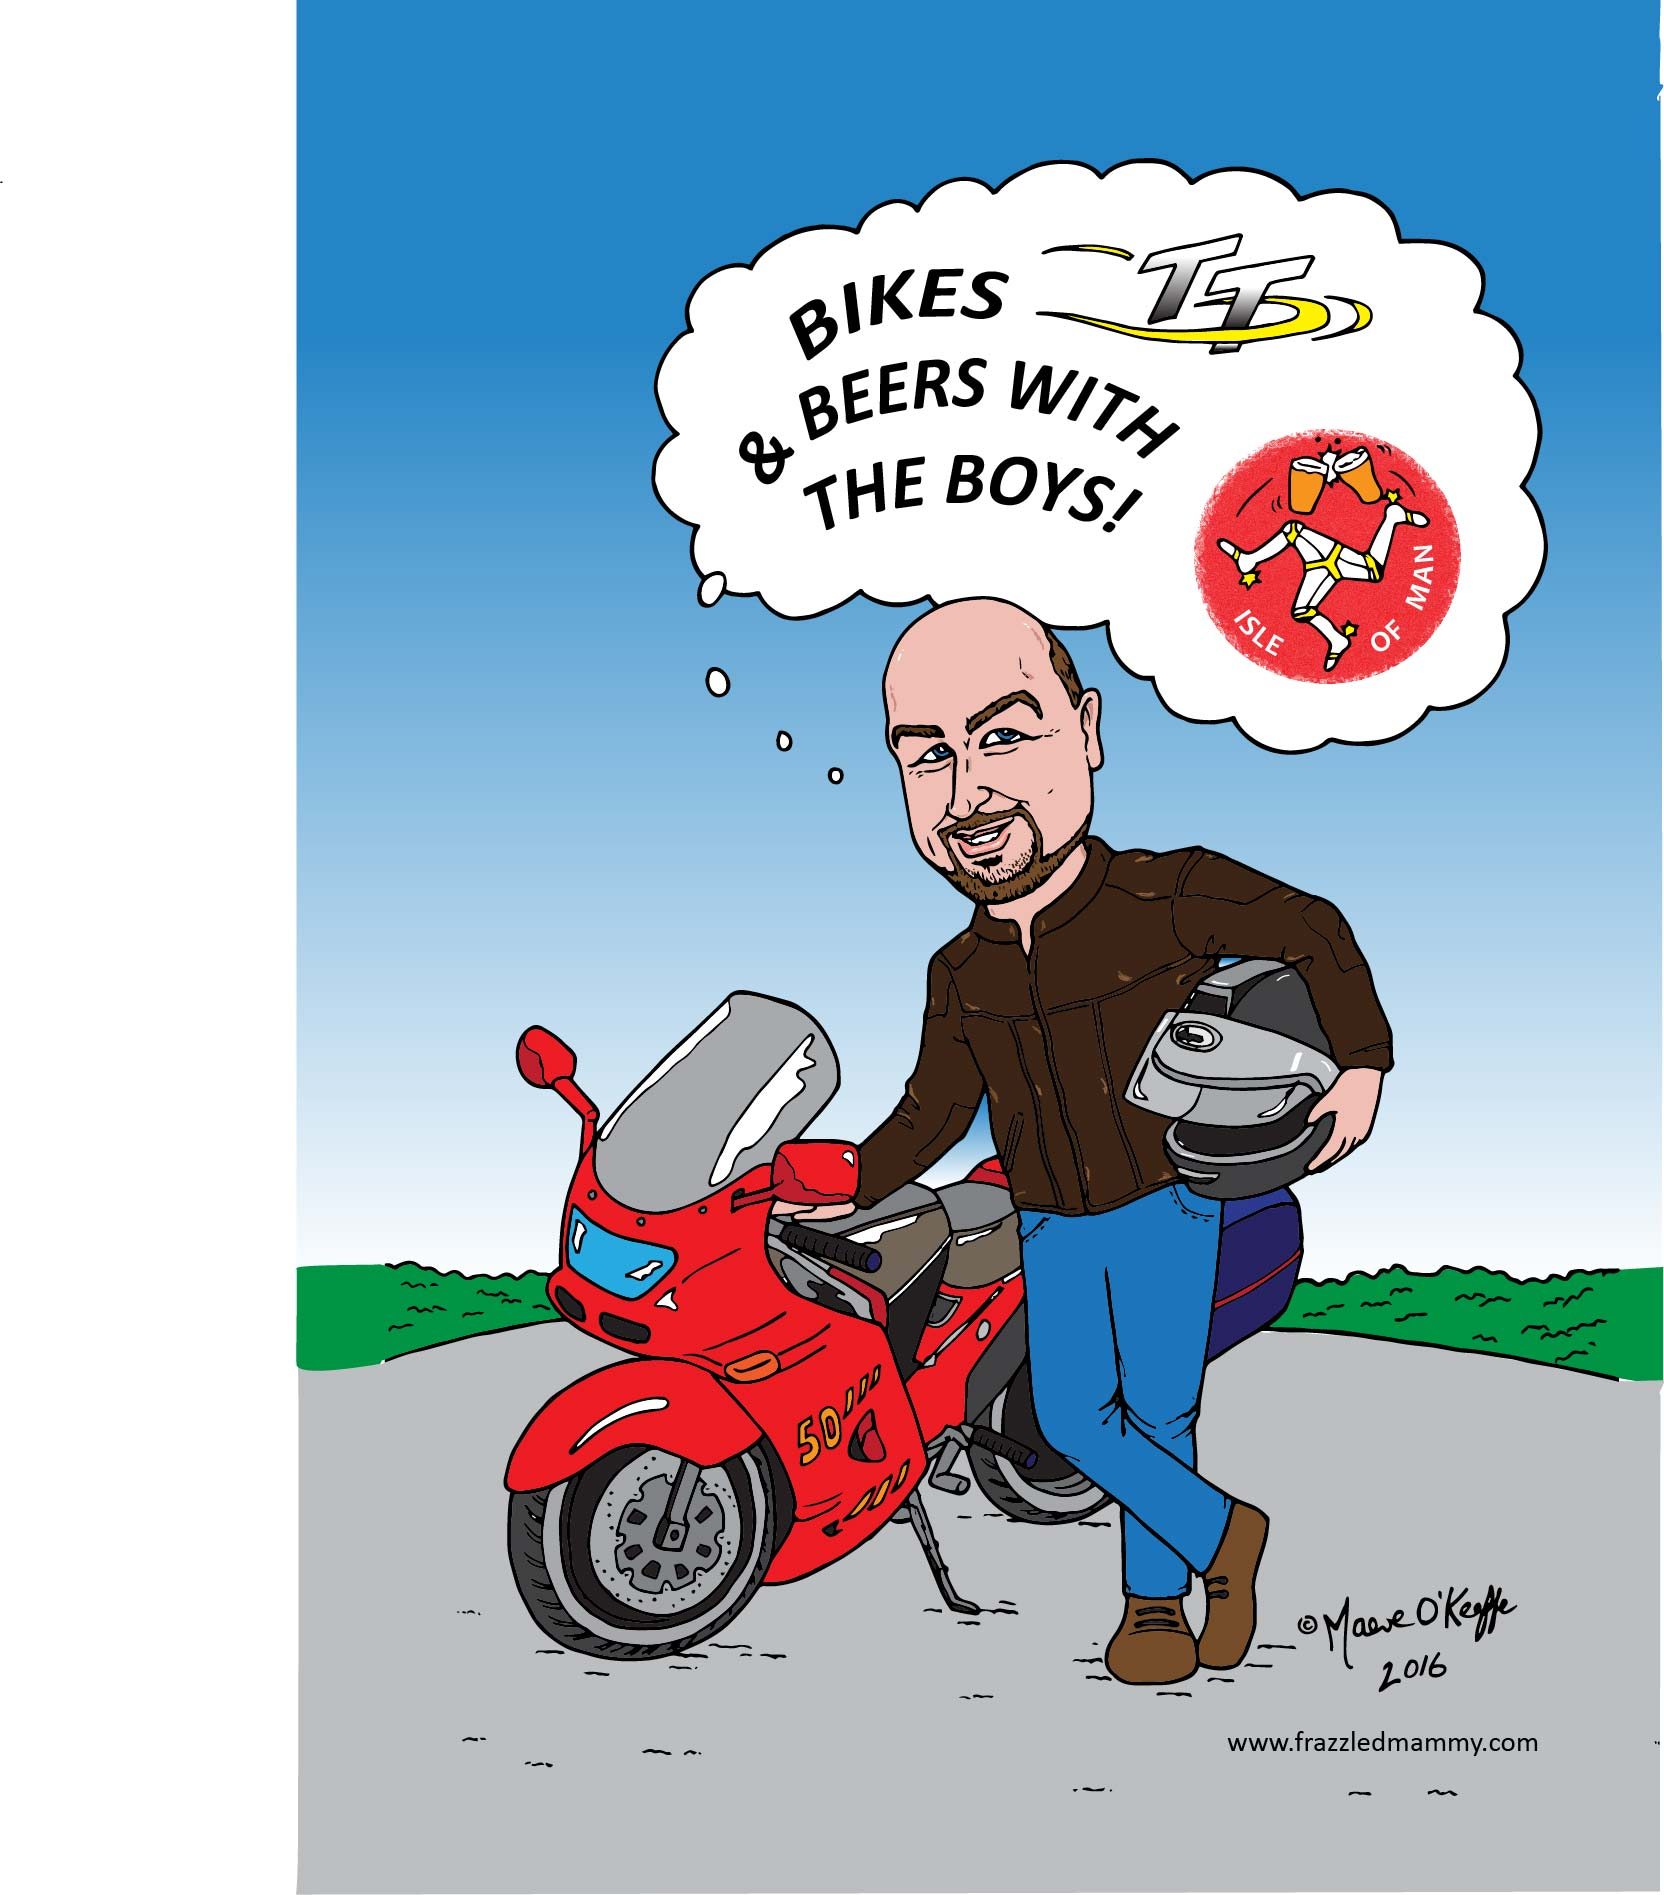 A caricature of John on a motorbike.